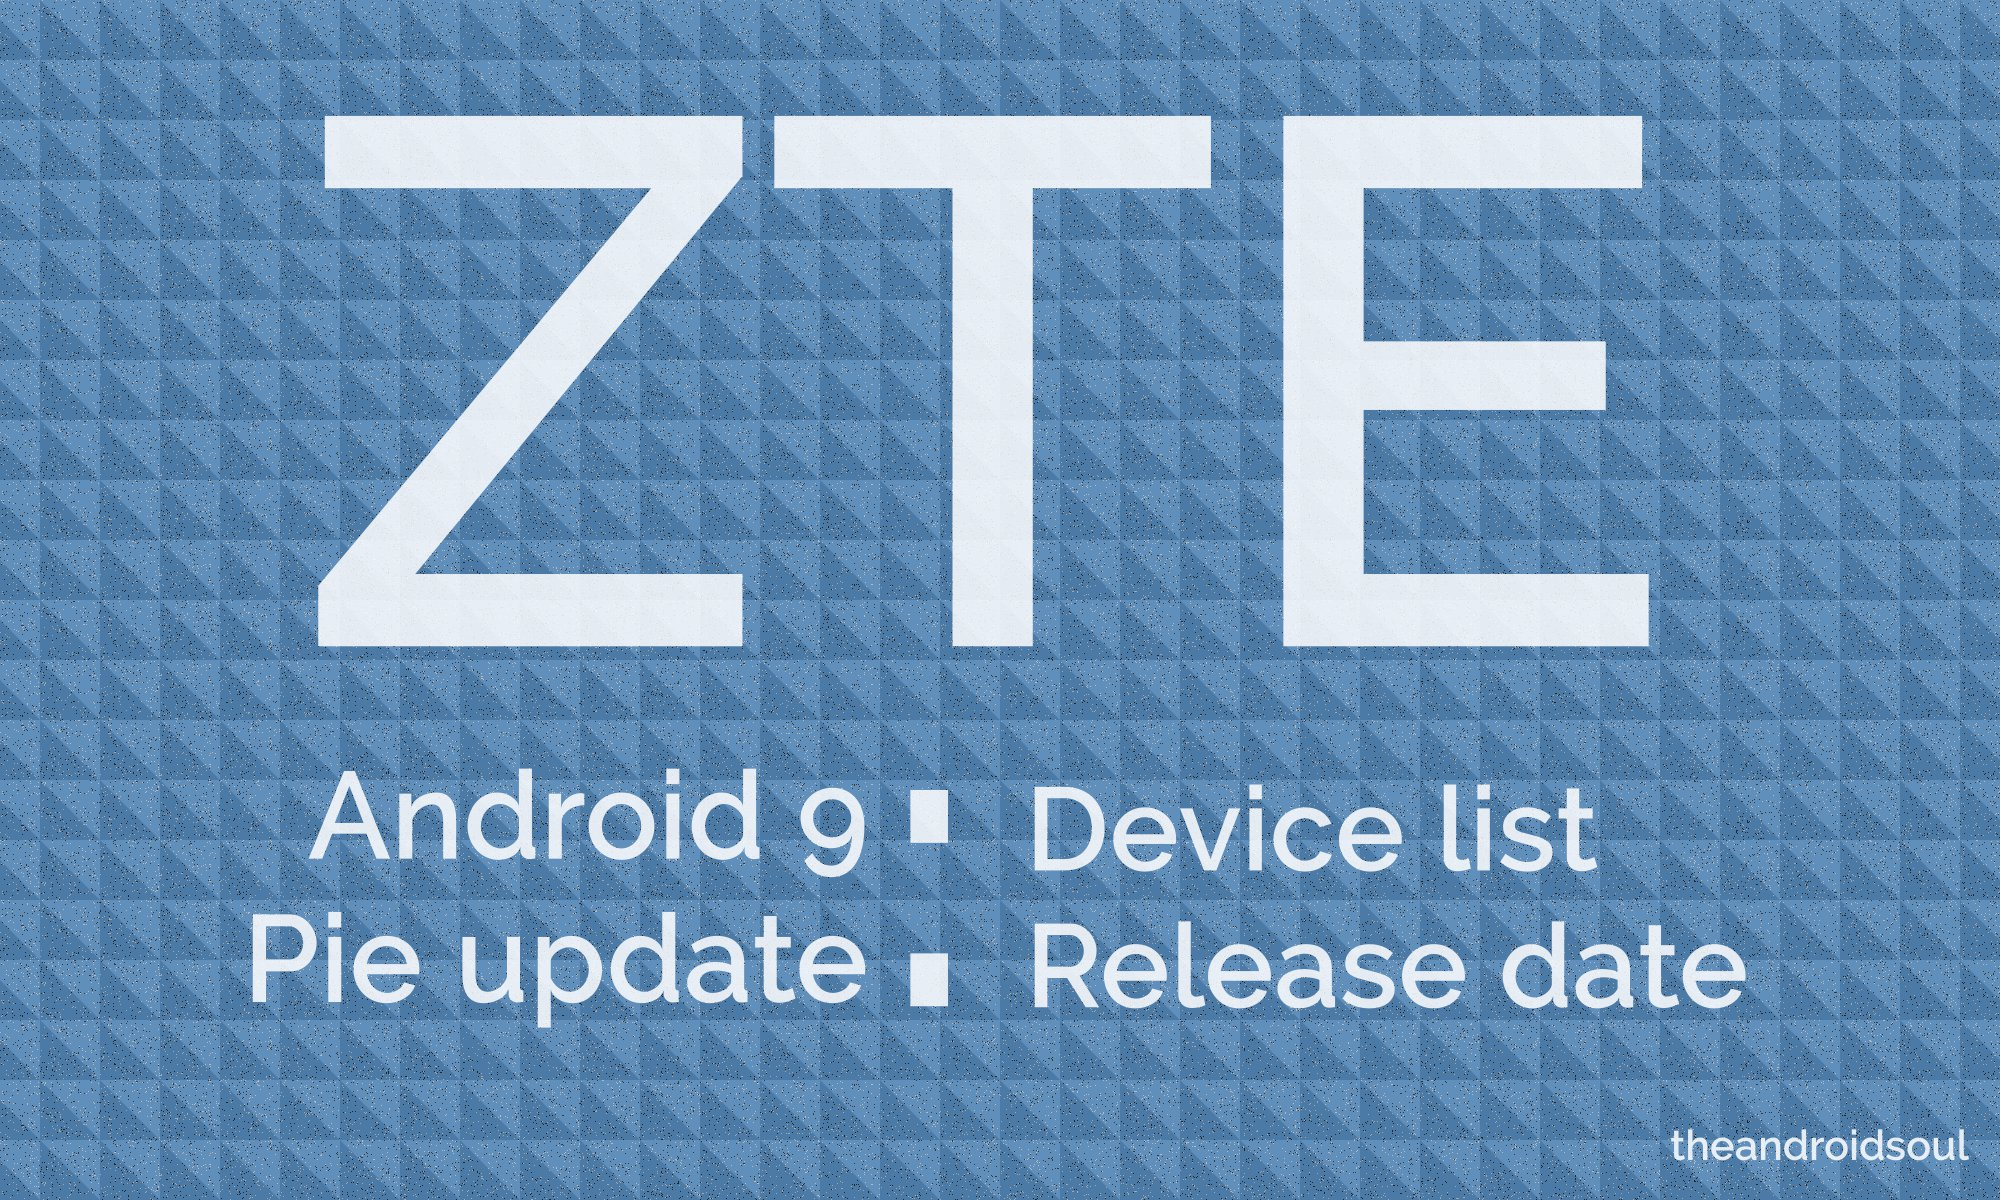 ZTE Android 9 Pie update